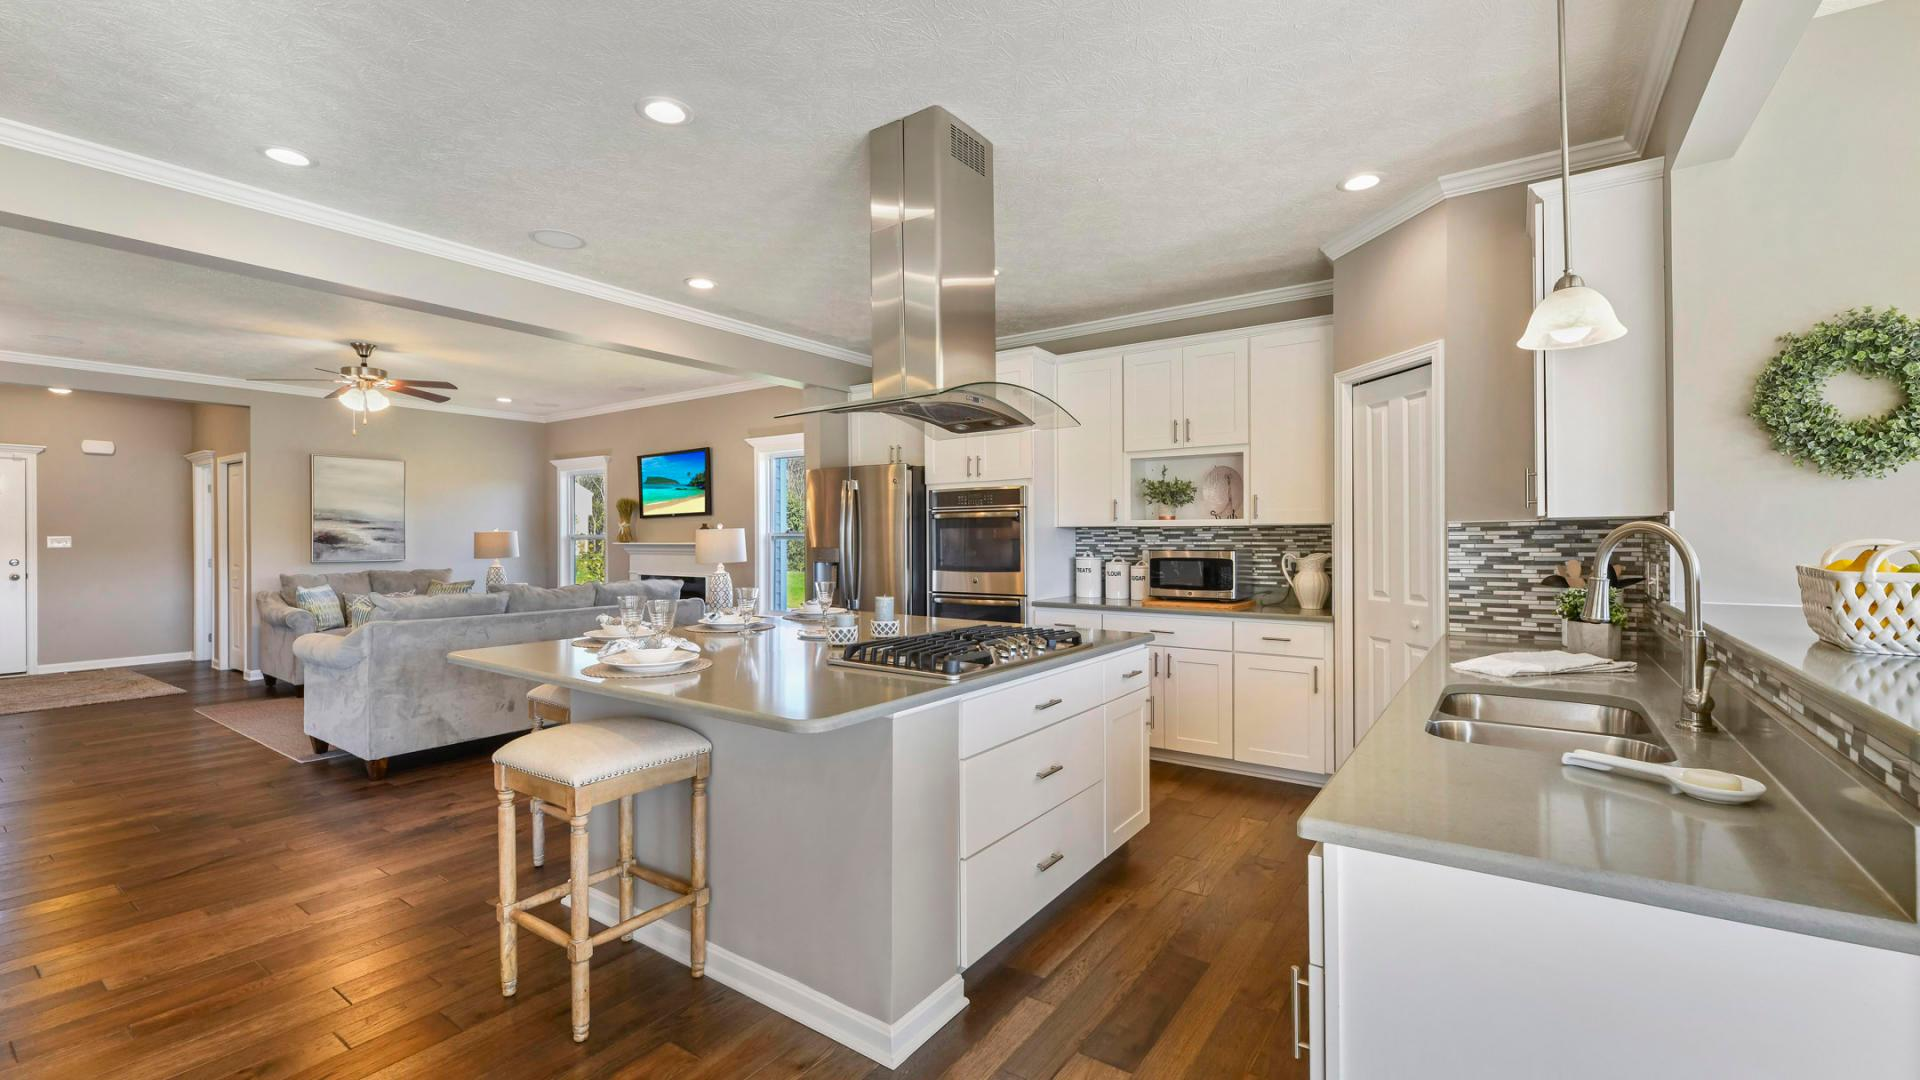 Kitchen featured in the Nashville By Maronda Homes in Pittsburgh, PA